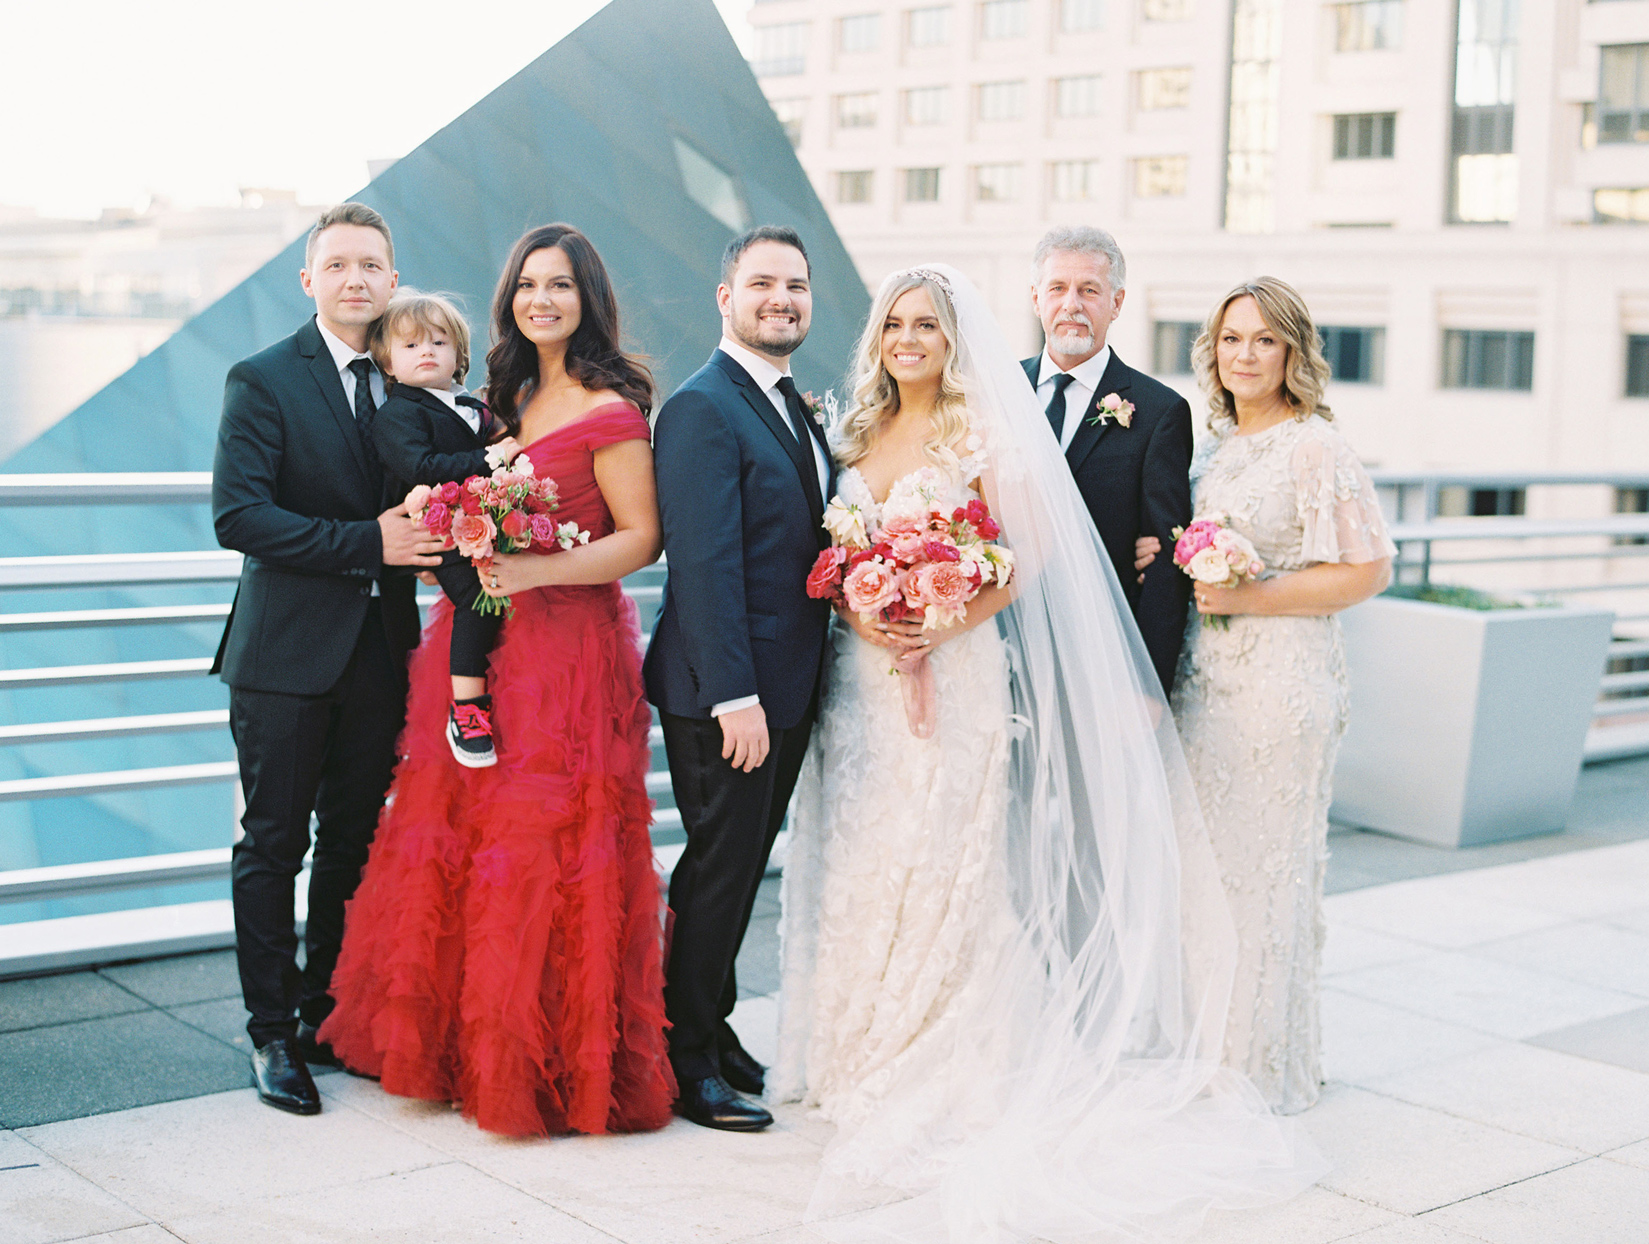 bride and groom stand outside smiling with family